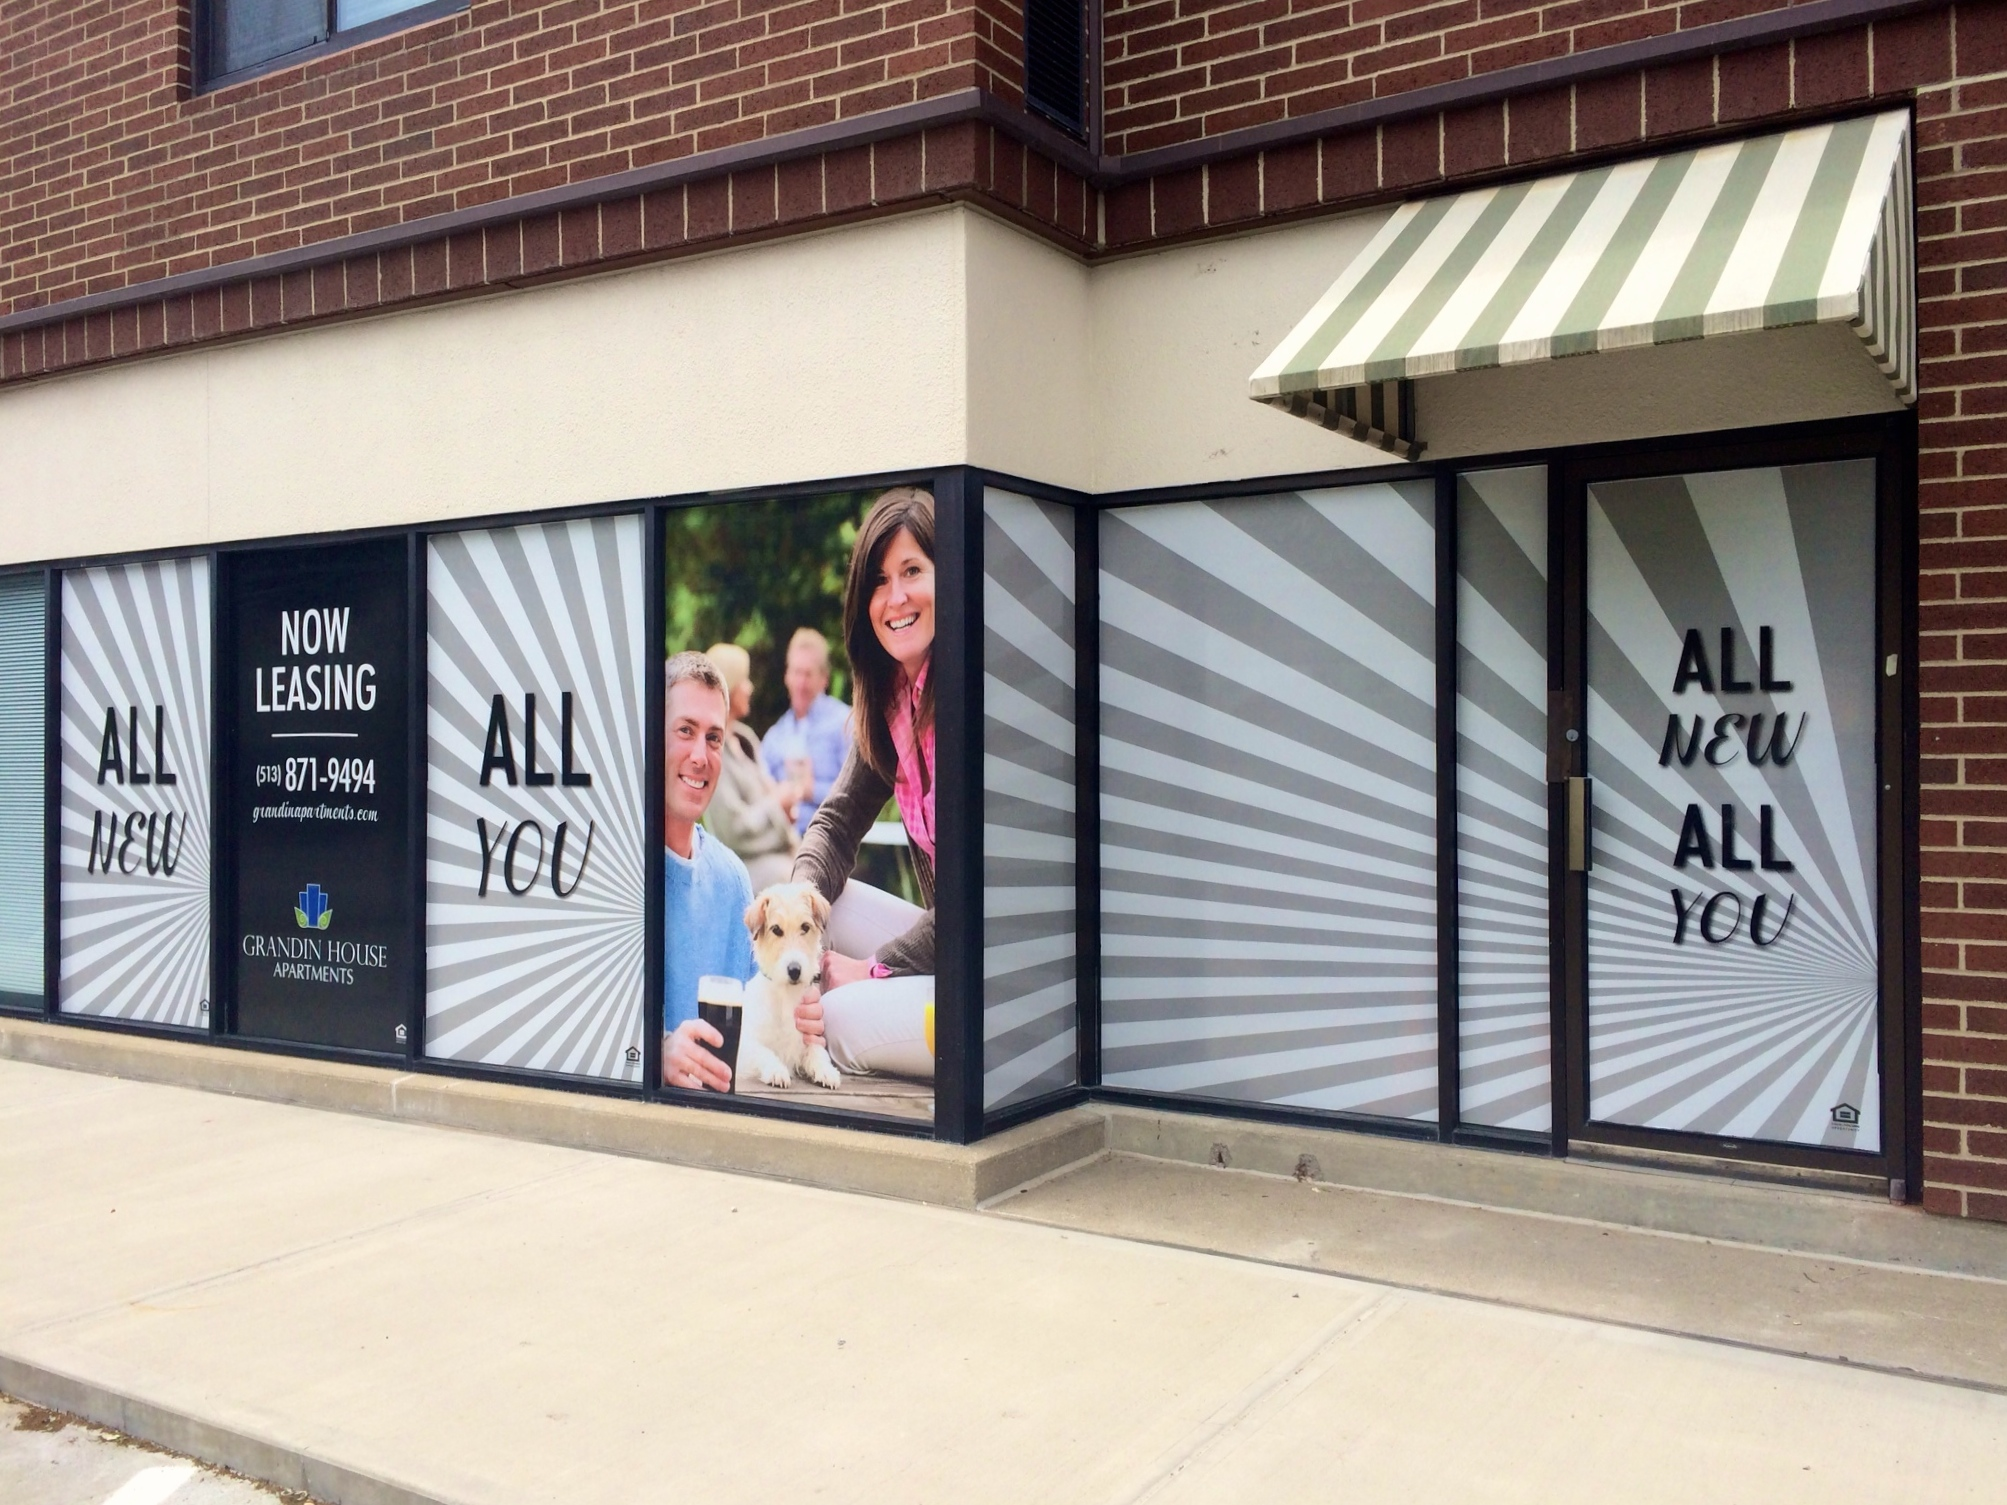 Digitally printed window graphics for Grandin House Apartments in Cincinnati, OH